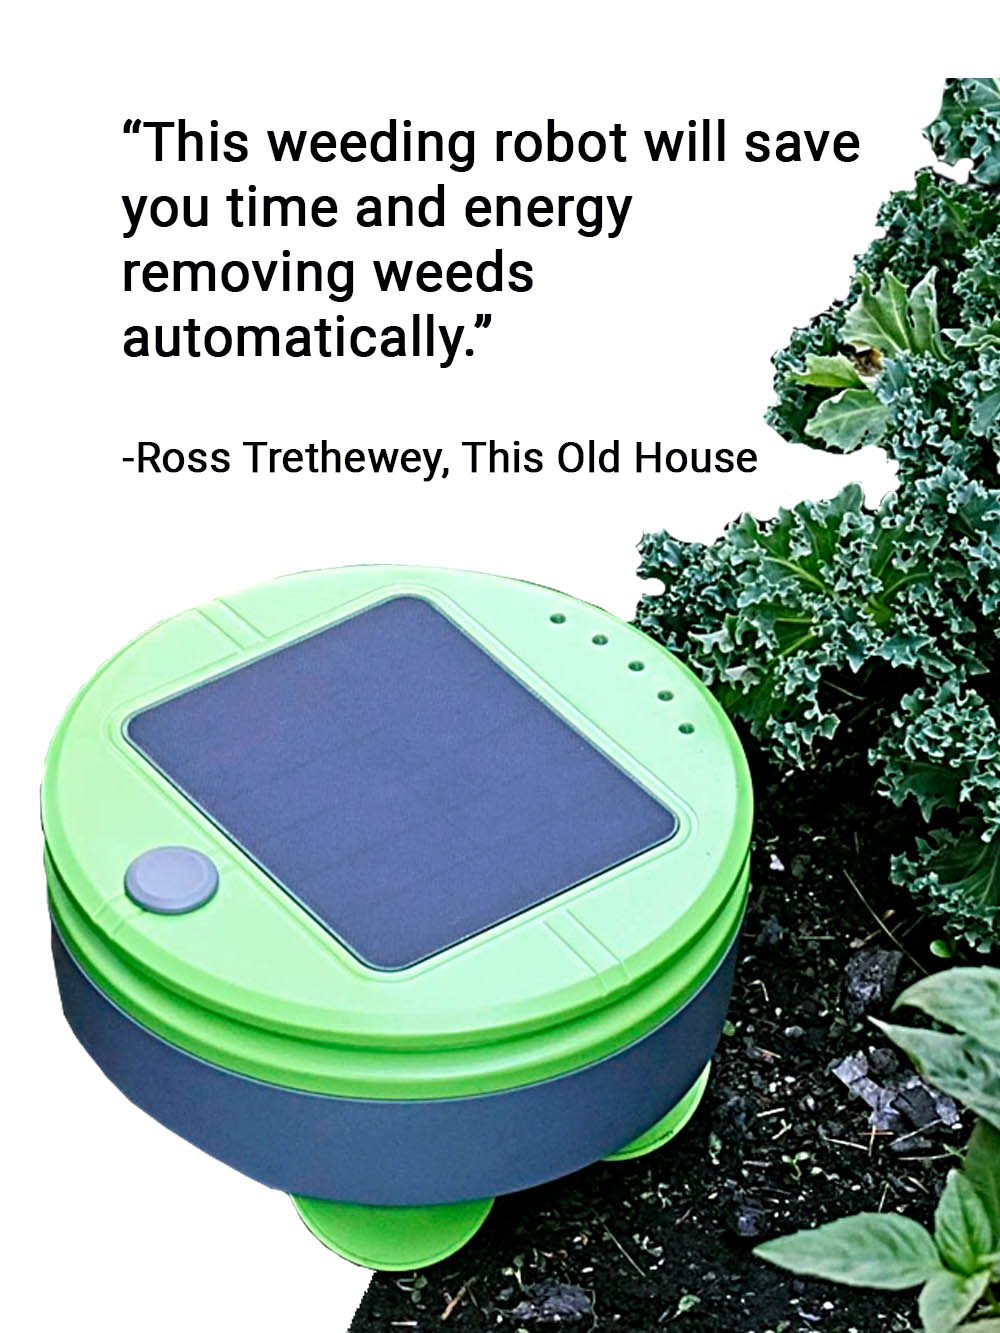 Ross Trethewey, from This Old House Quote on how Tertill the weeding robot will save you time and energy weeding your garden automatically.